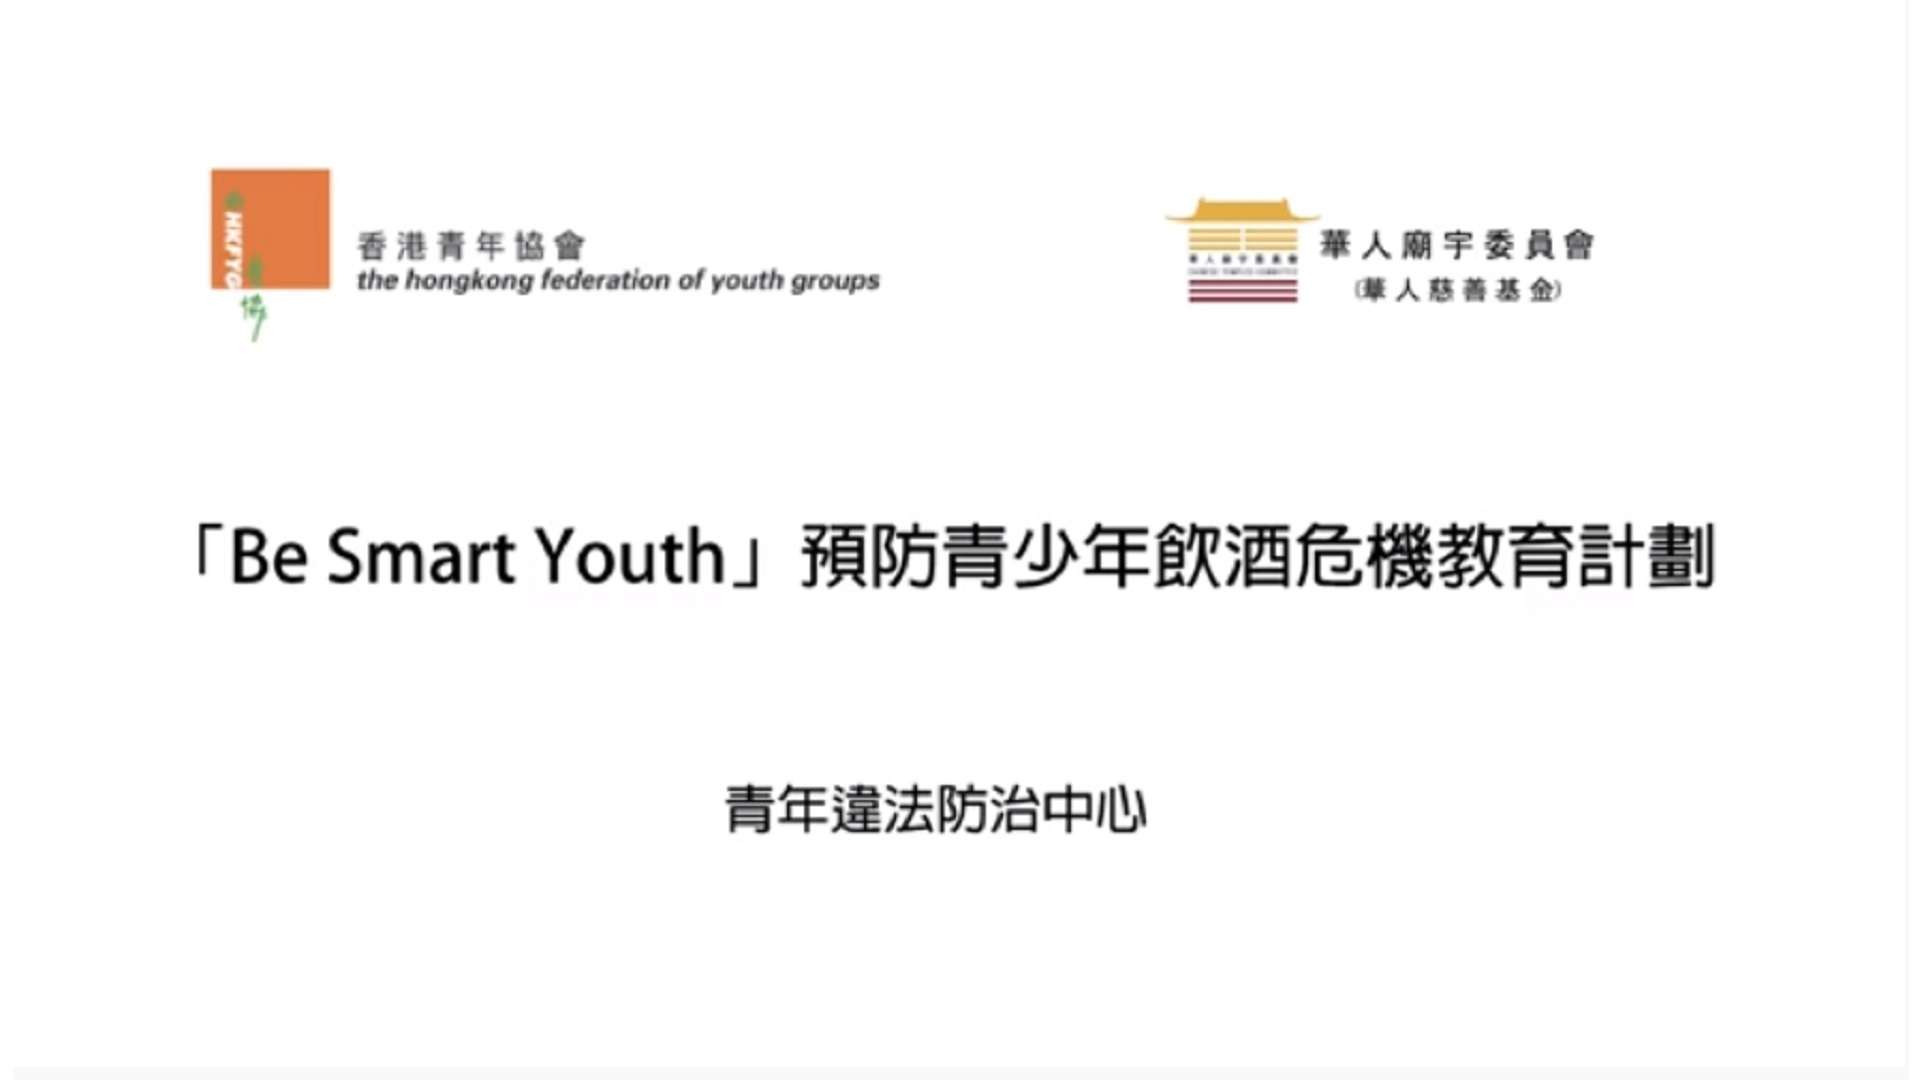 be smart youth